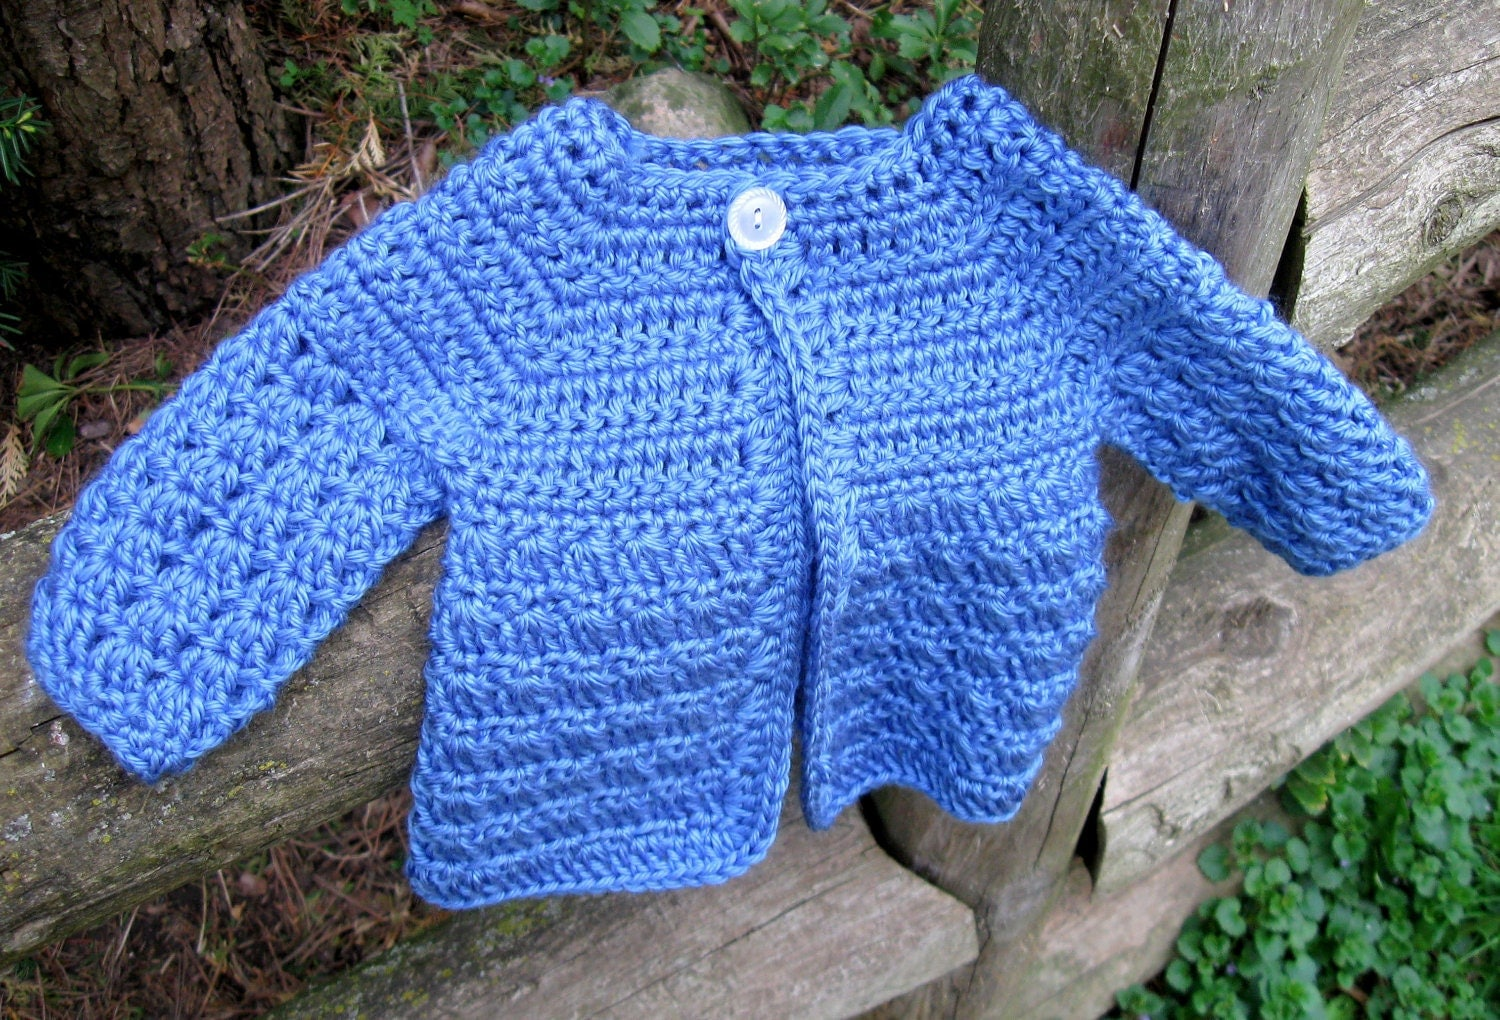 Crochet Baby Girl Cardigan Pattern Free : Crochet Patterns Baby Sweater